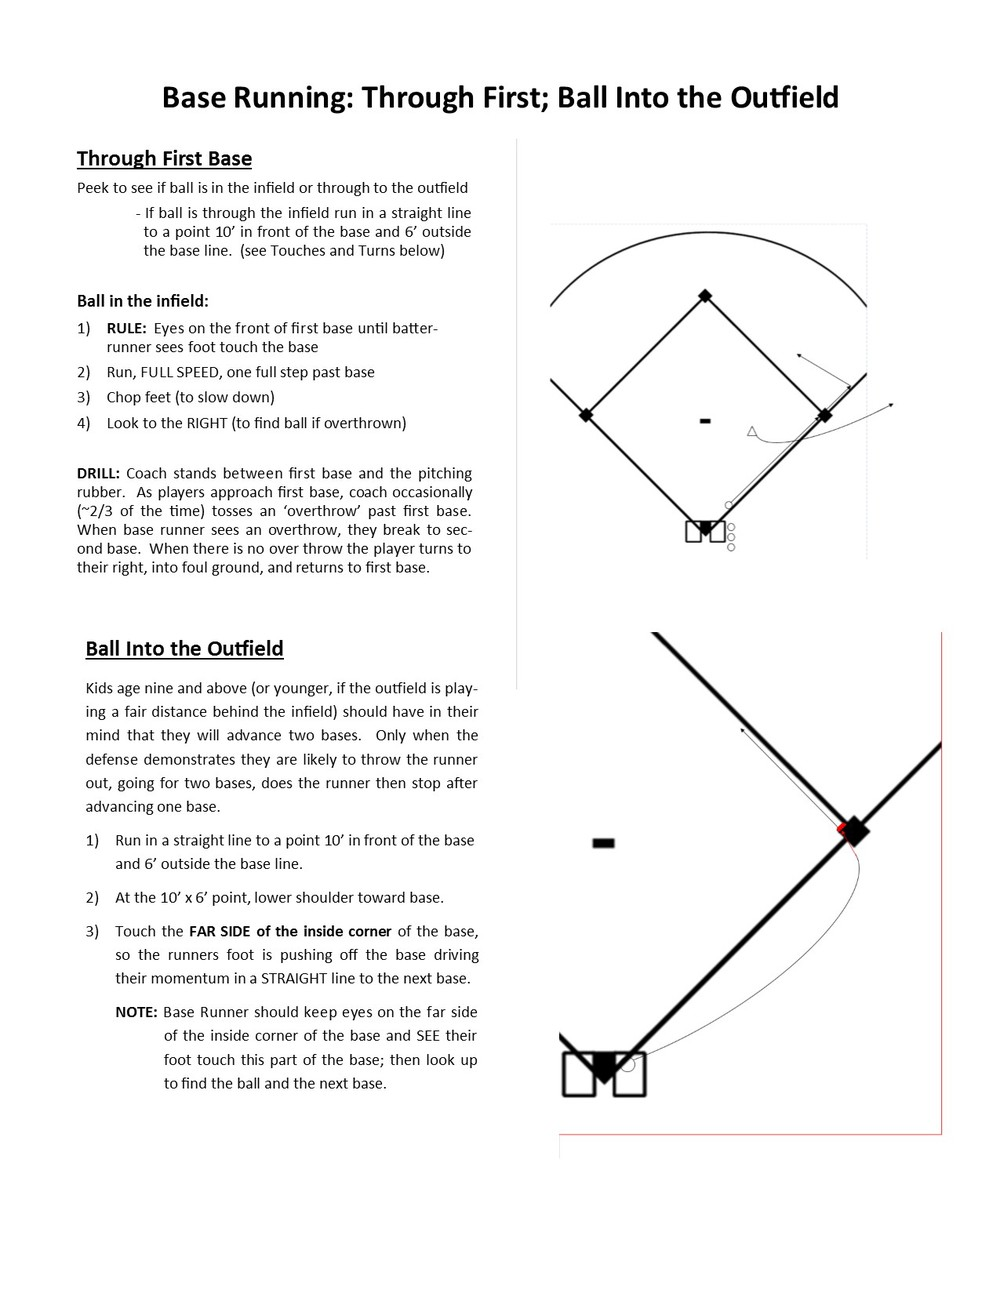 Base Running -- Through First - Turns and Touches.jpg